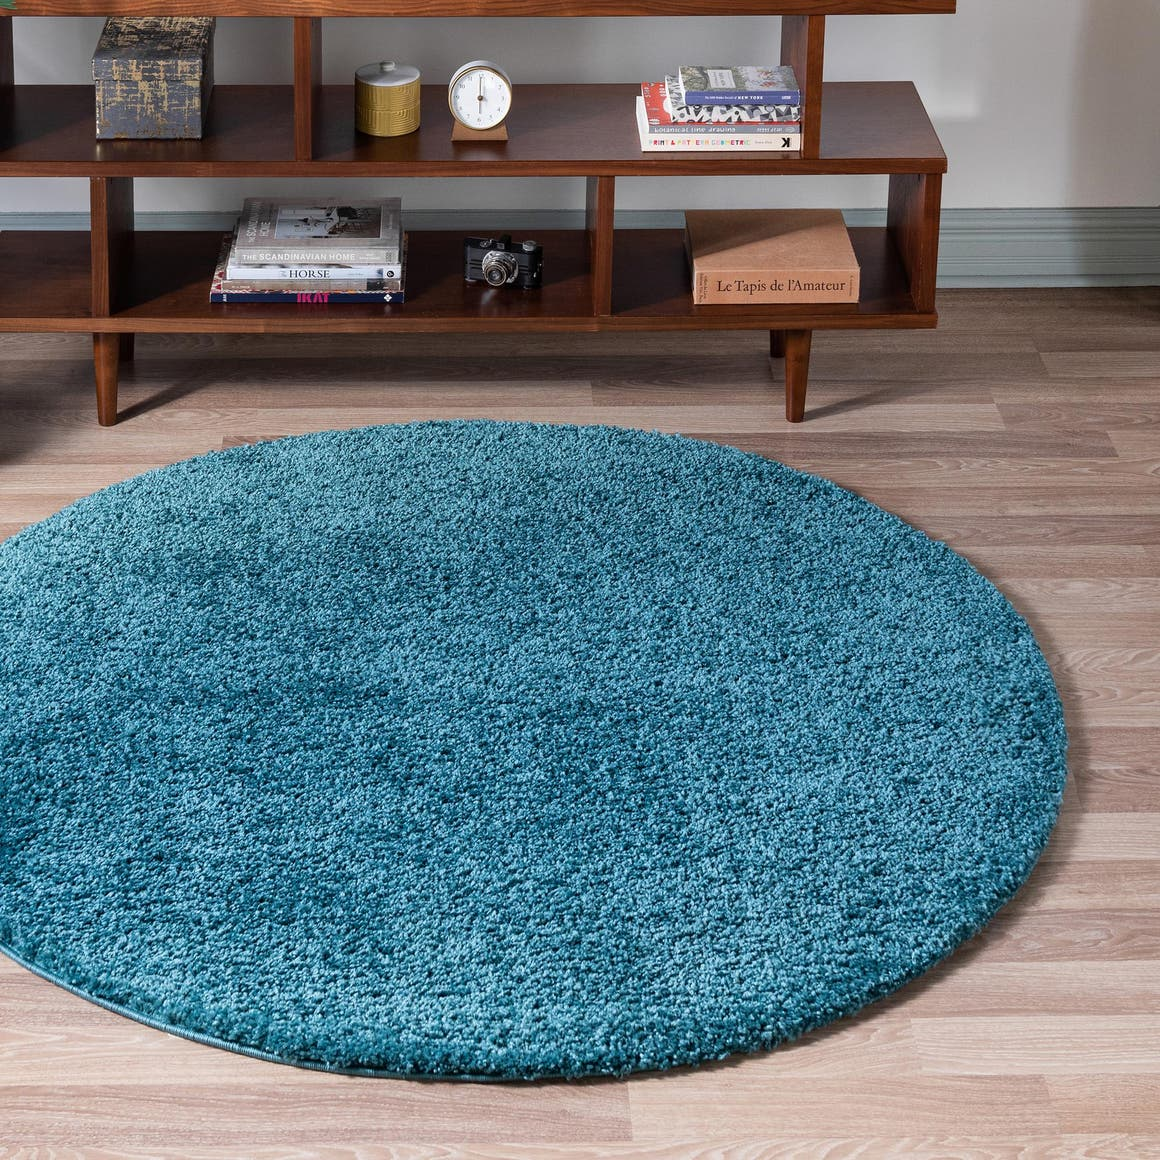 rugs com soft solid shag collection round rug ai 8 ft round turquoise shag rug perfect for kitchens dining rooms